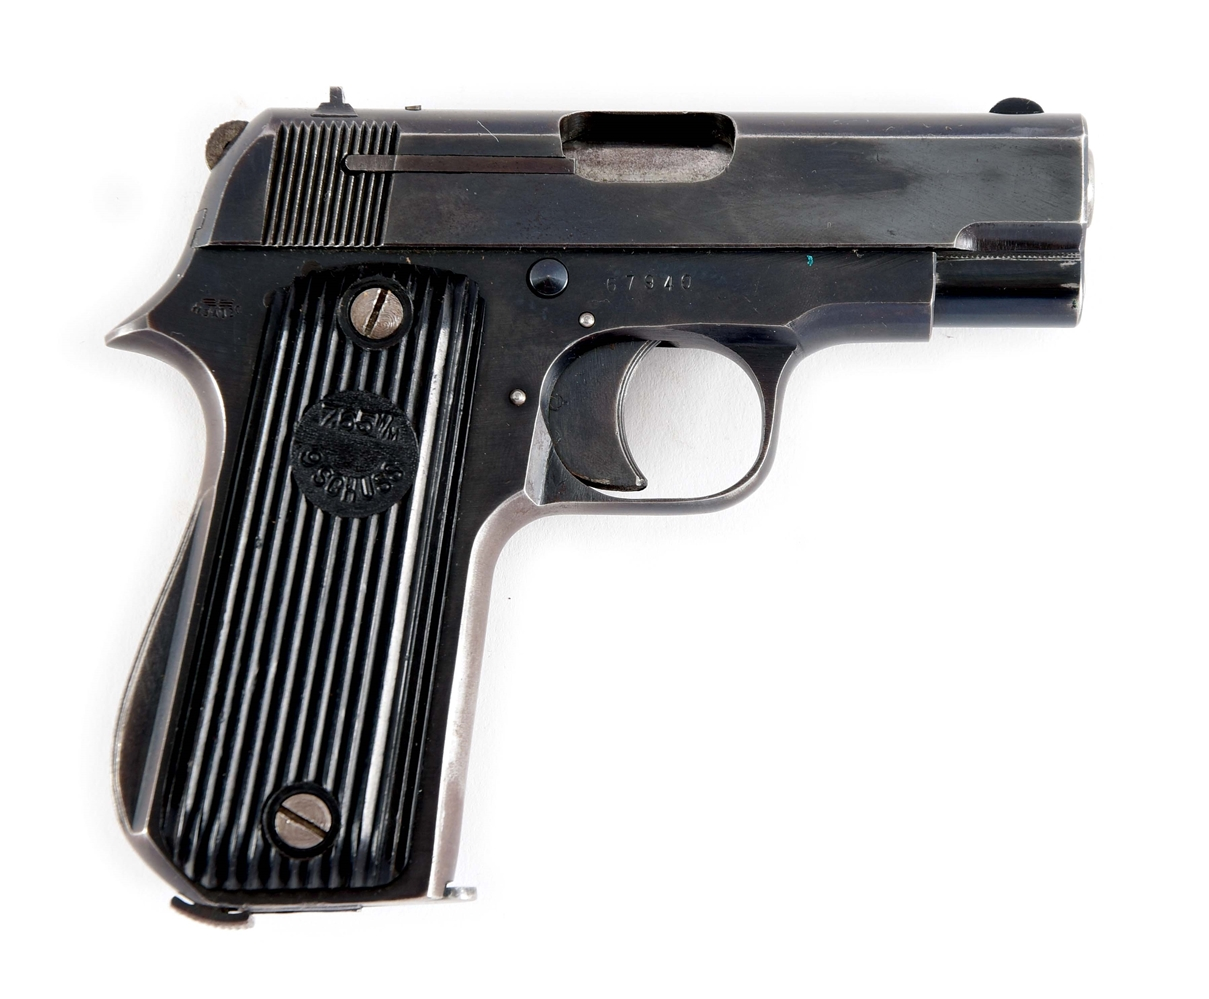 (C) GERMAN UNIQUE KRIEGSMODELL 7.65 SEMI-AUTOMATIC PISTOL WITH HOLSTER